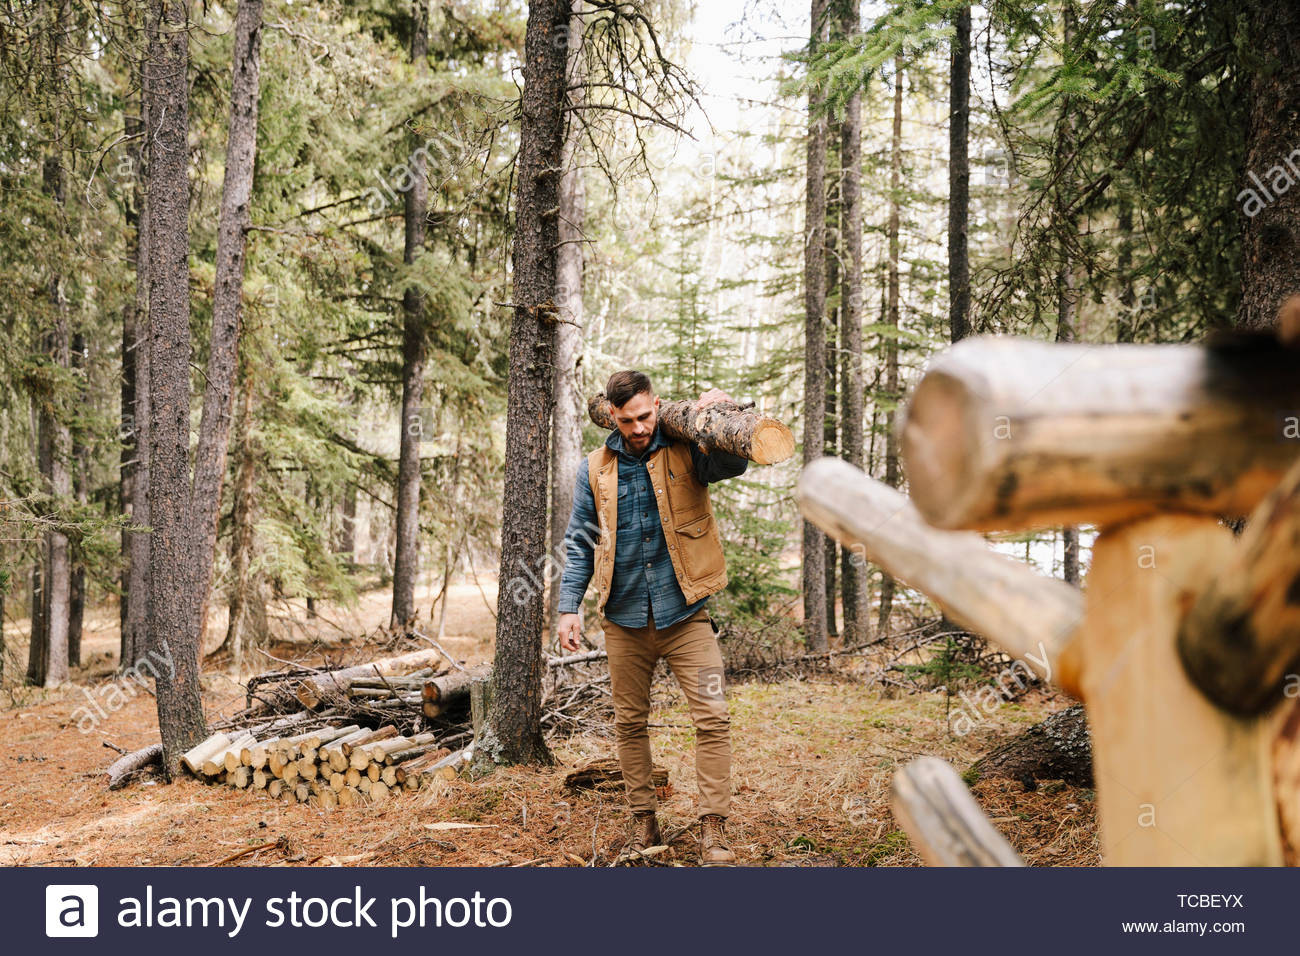 Man carrying tree trunk for firewood in woods - Stock Image